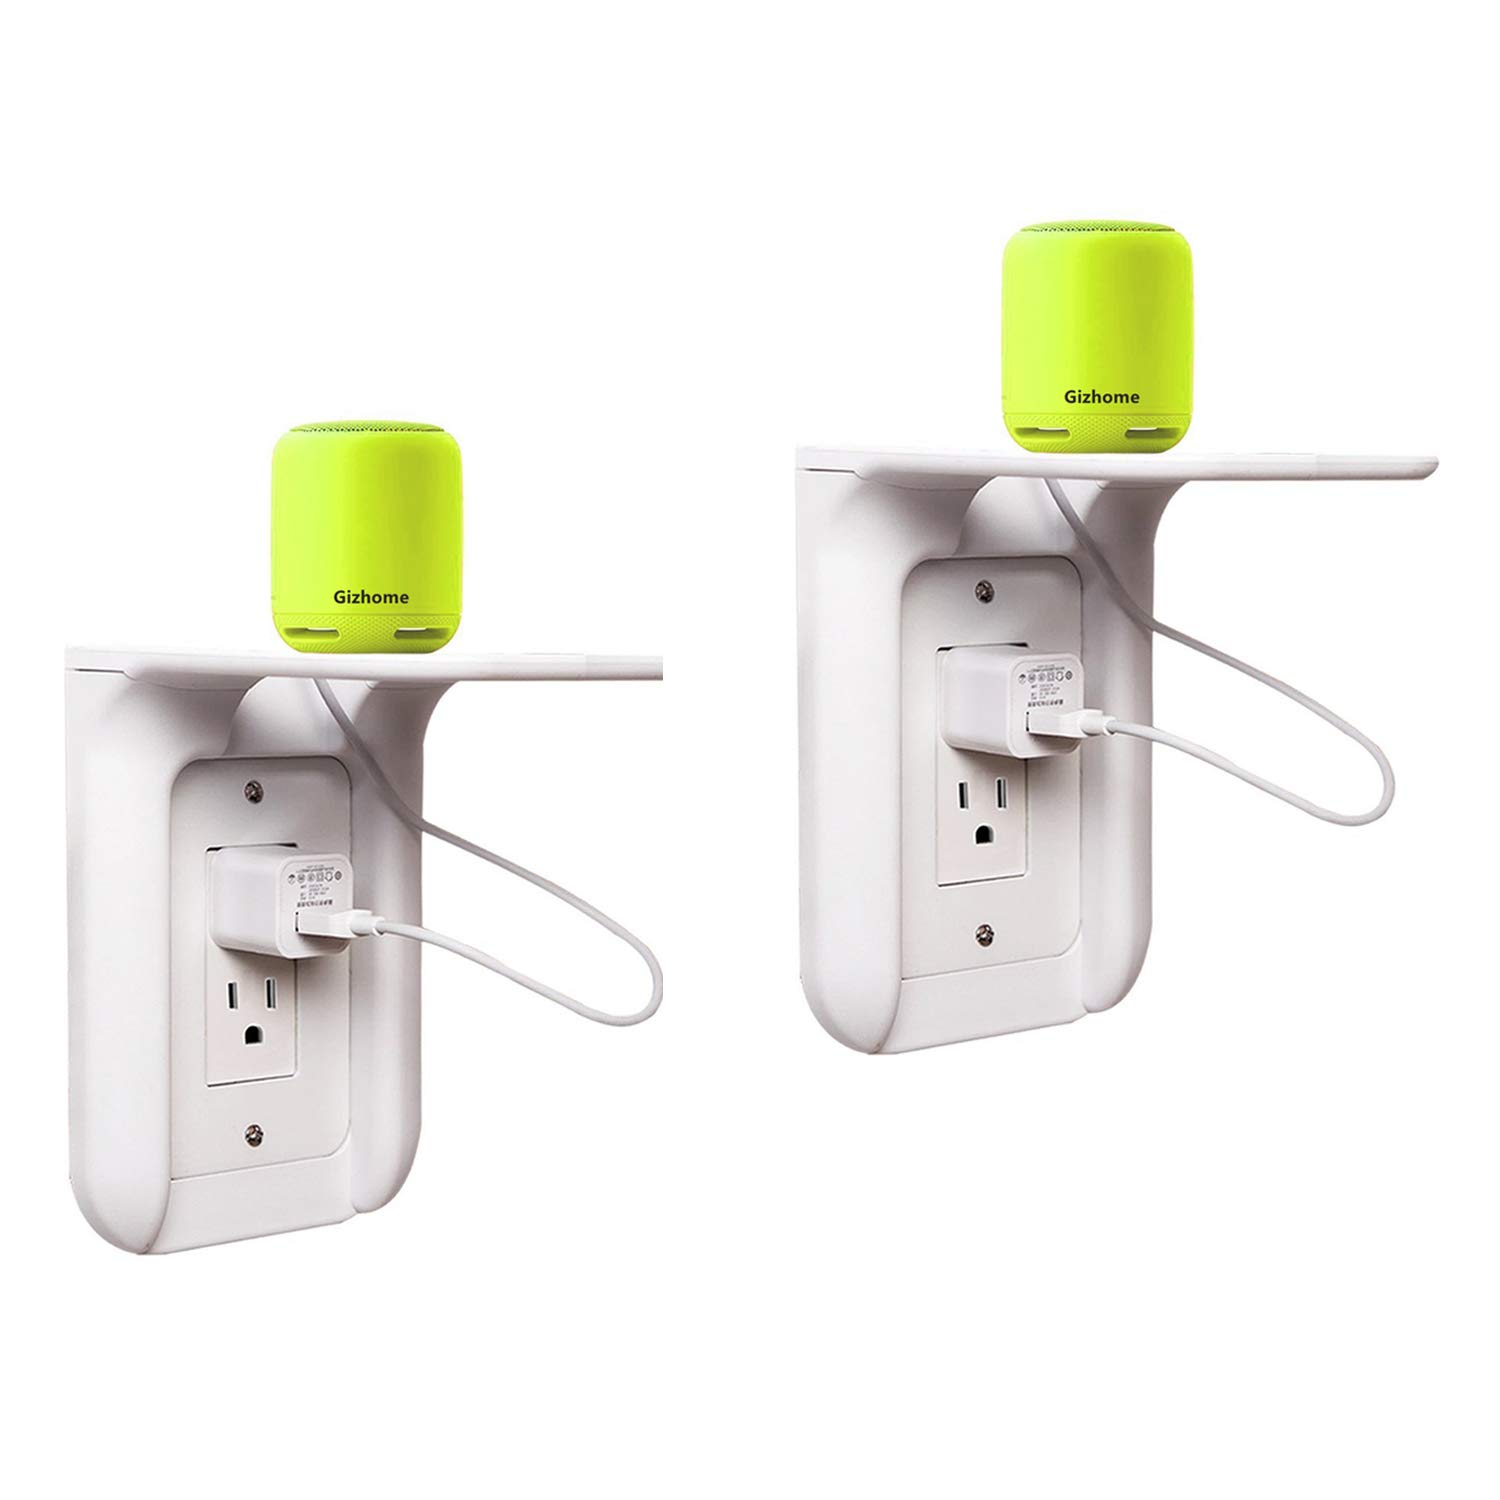 Gizhome 2 Pack Wall Outlet Shelf Power Perch, Works with Standard Vertical Duplex/Decor Outlets, Charging Shelf for Devices Up to 7lbs, Easy Installation, White by Gizhome (Image #1)